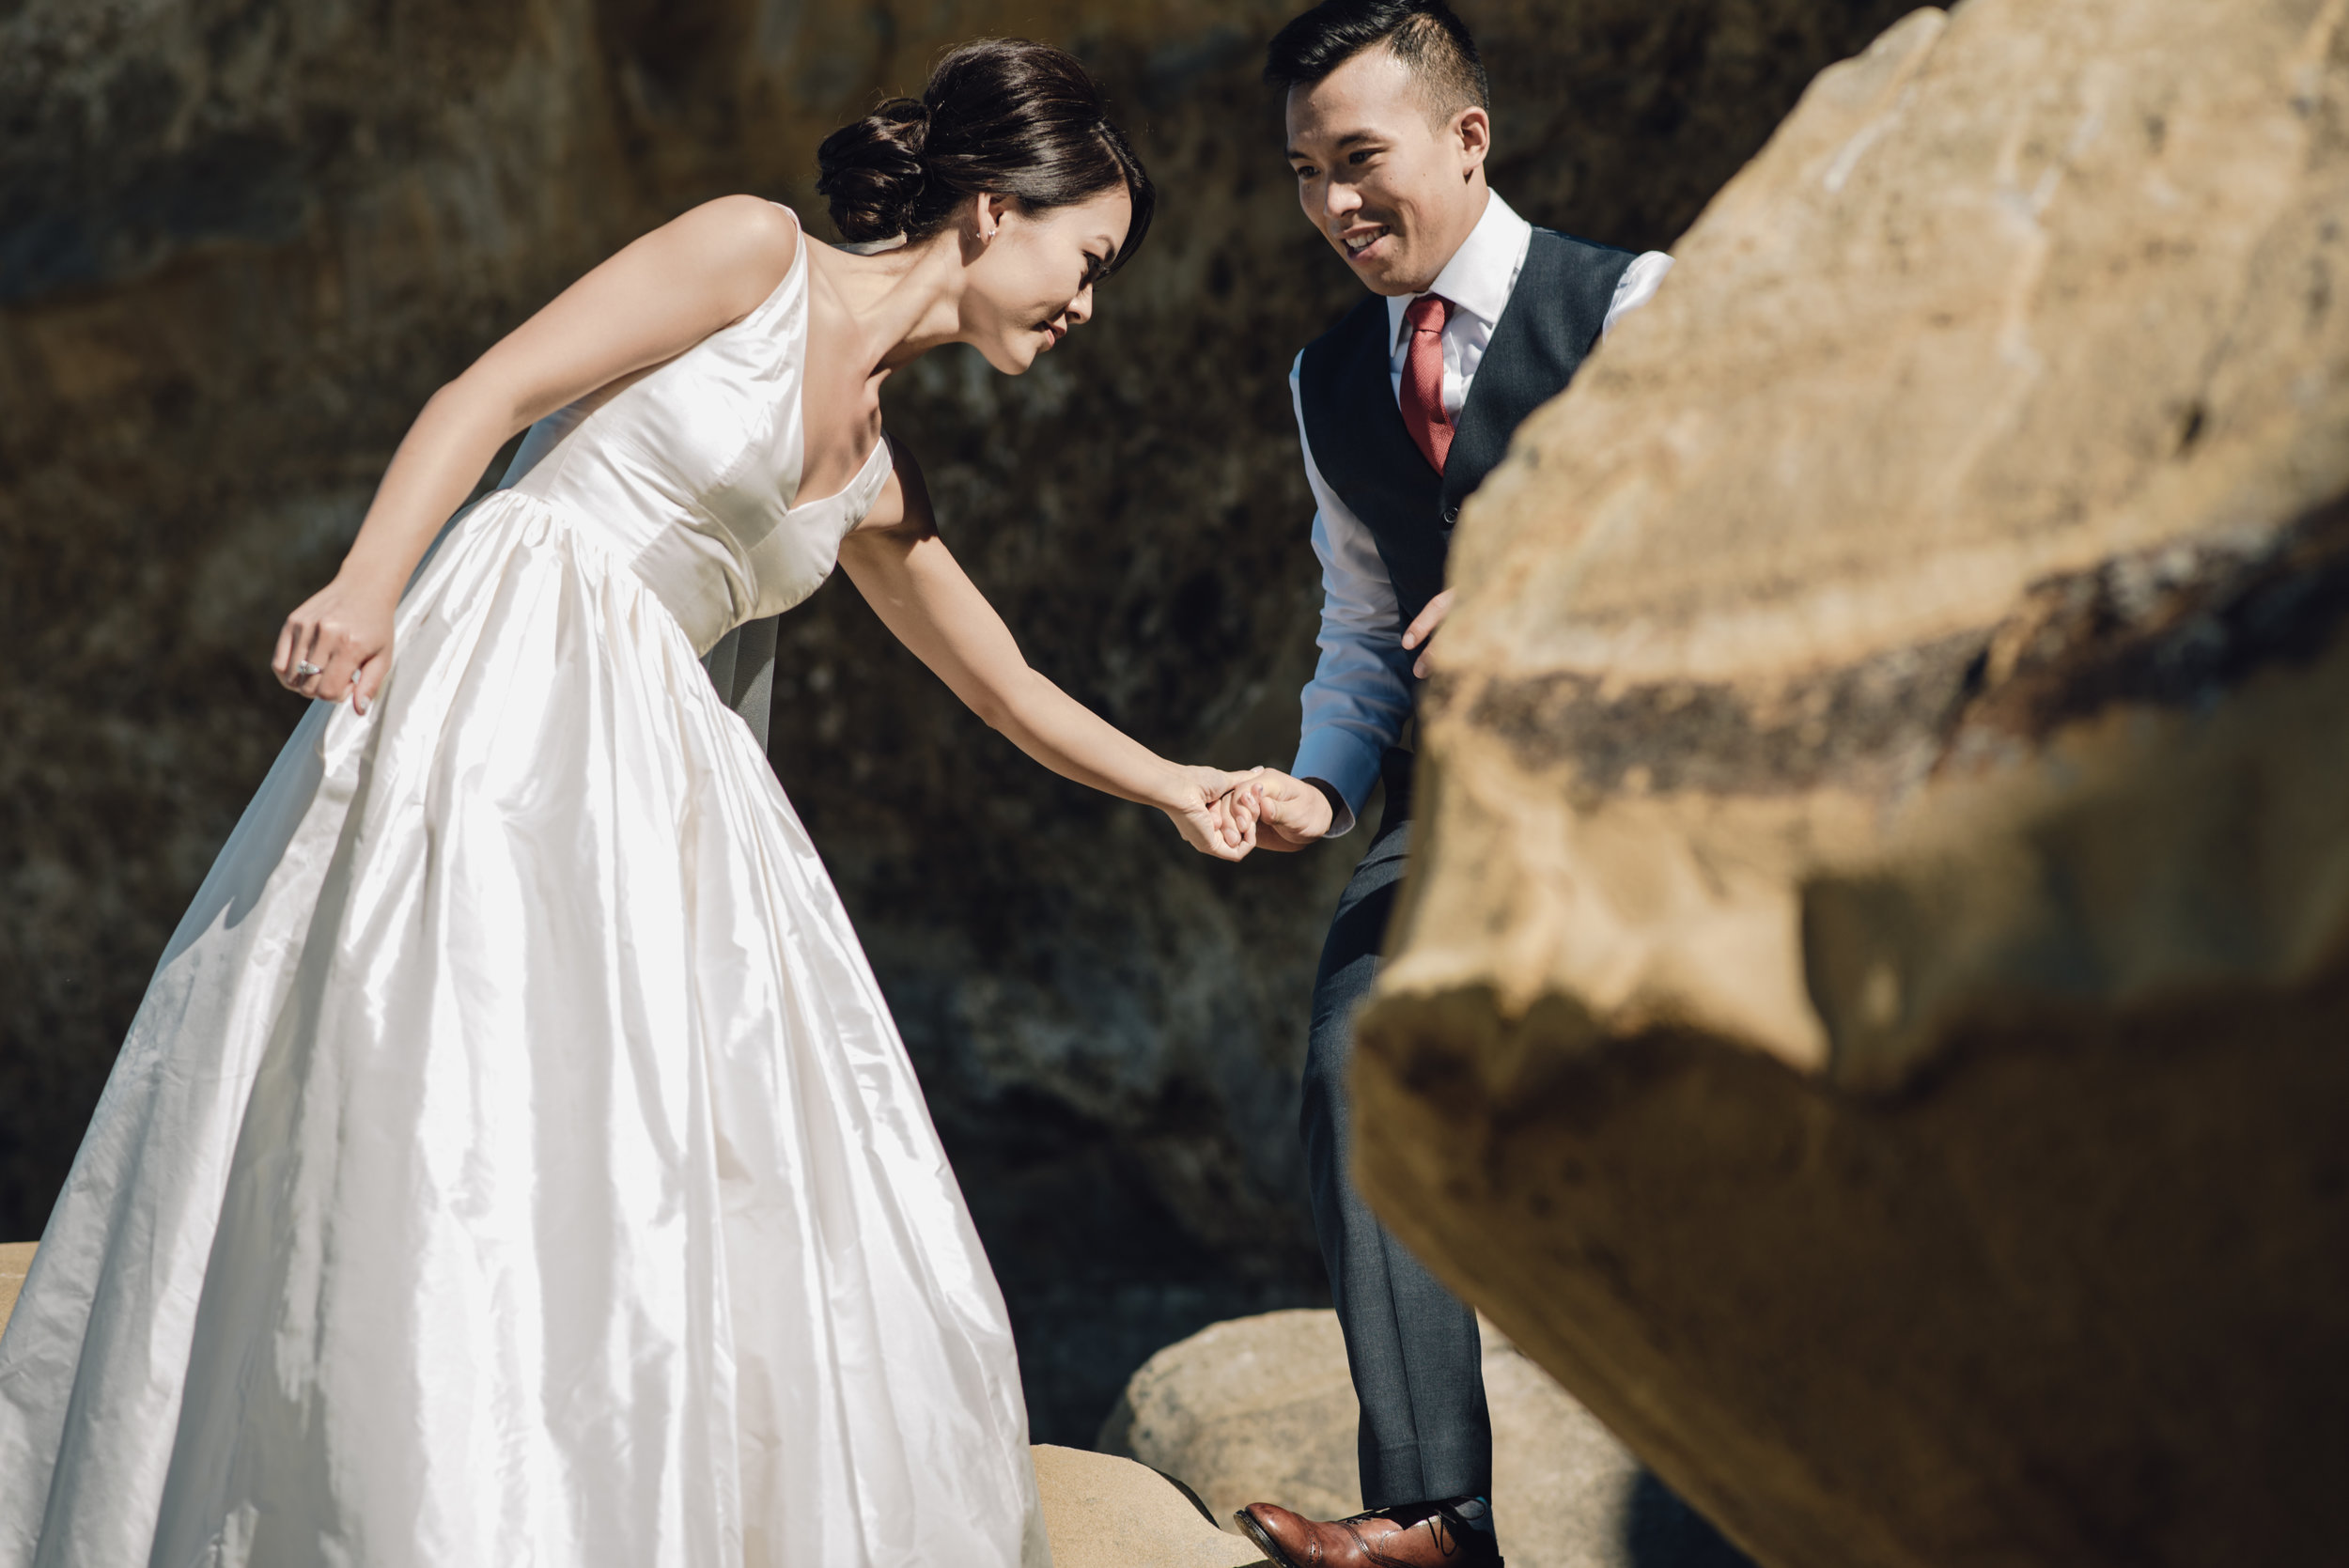 Main and Simple Photography_2017_Weddings_SanDiego_T+E-632.jpg